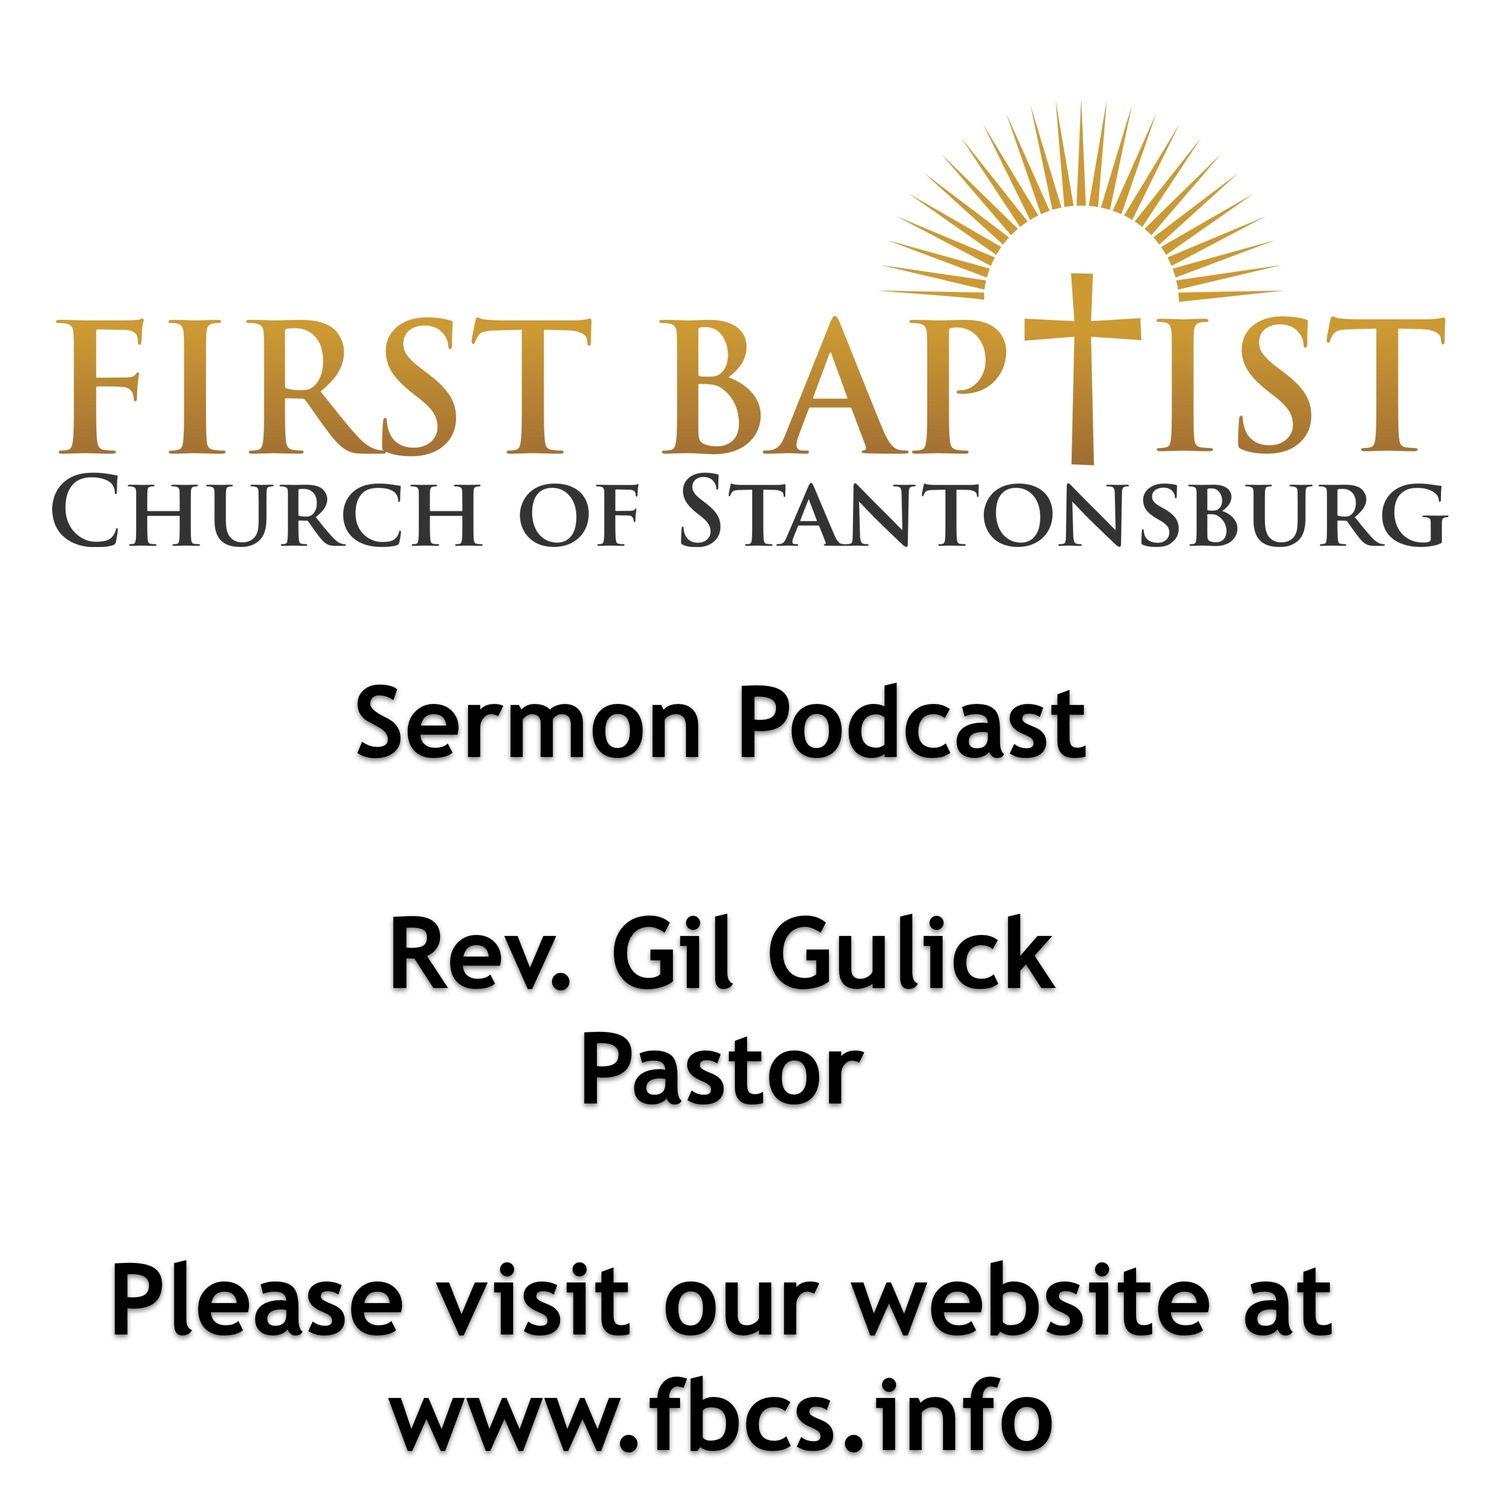 Sermon Podcast - First Baptist Church of Stantonsburg